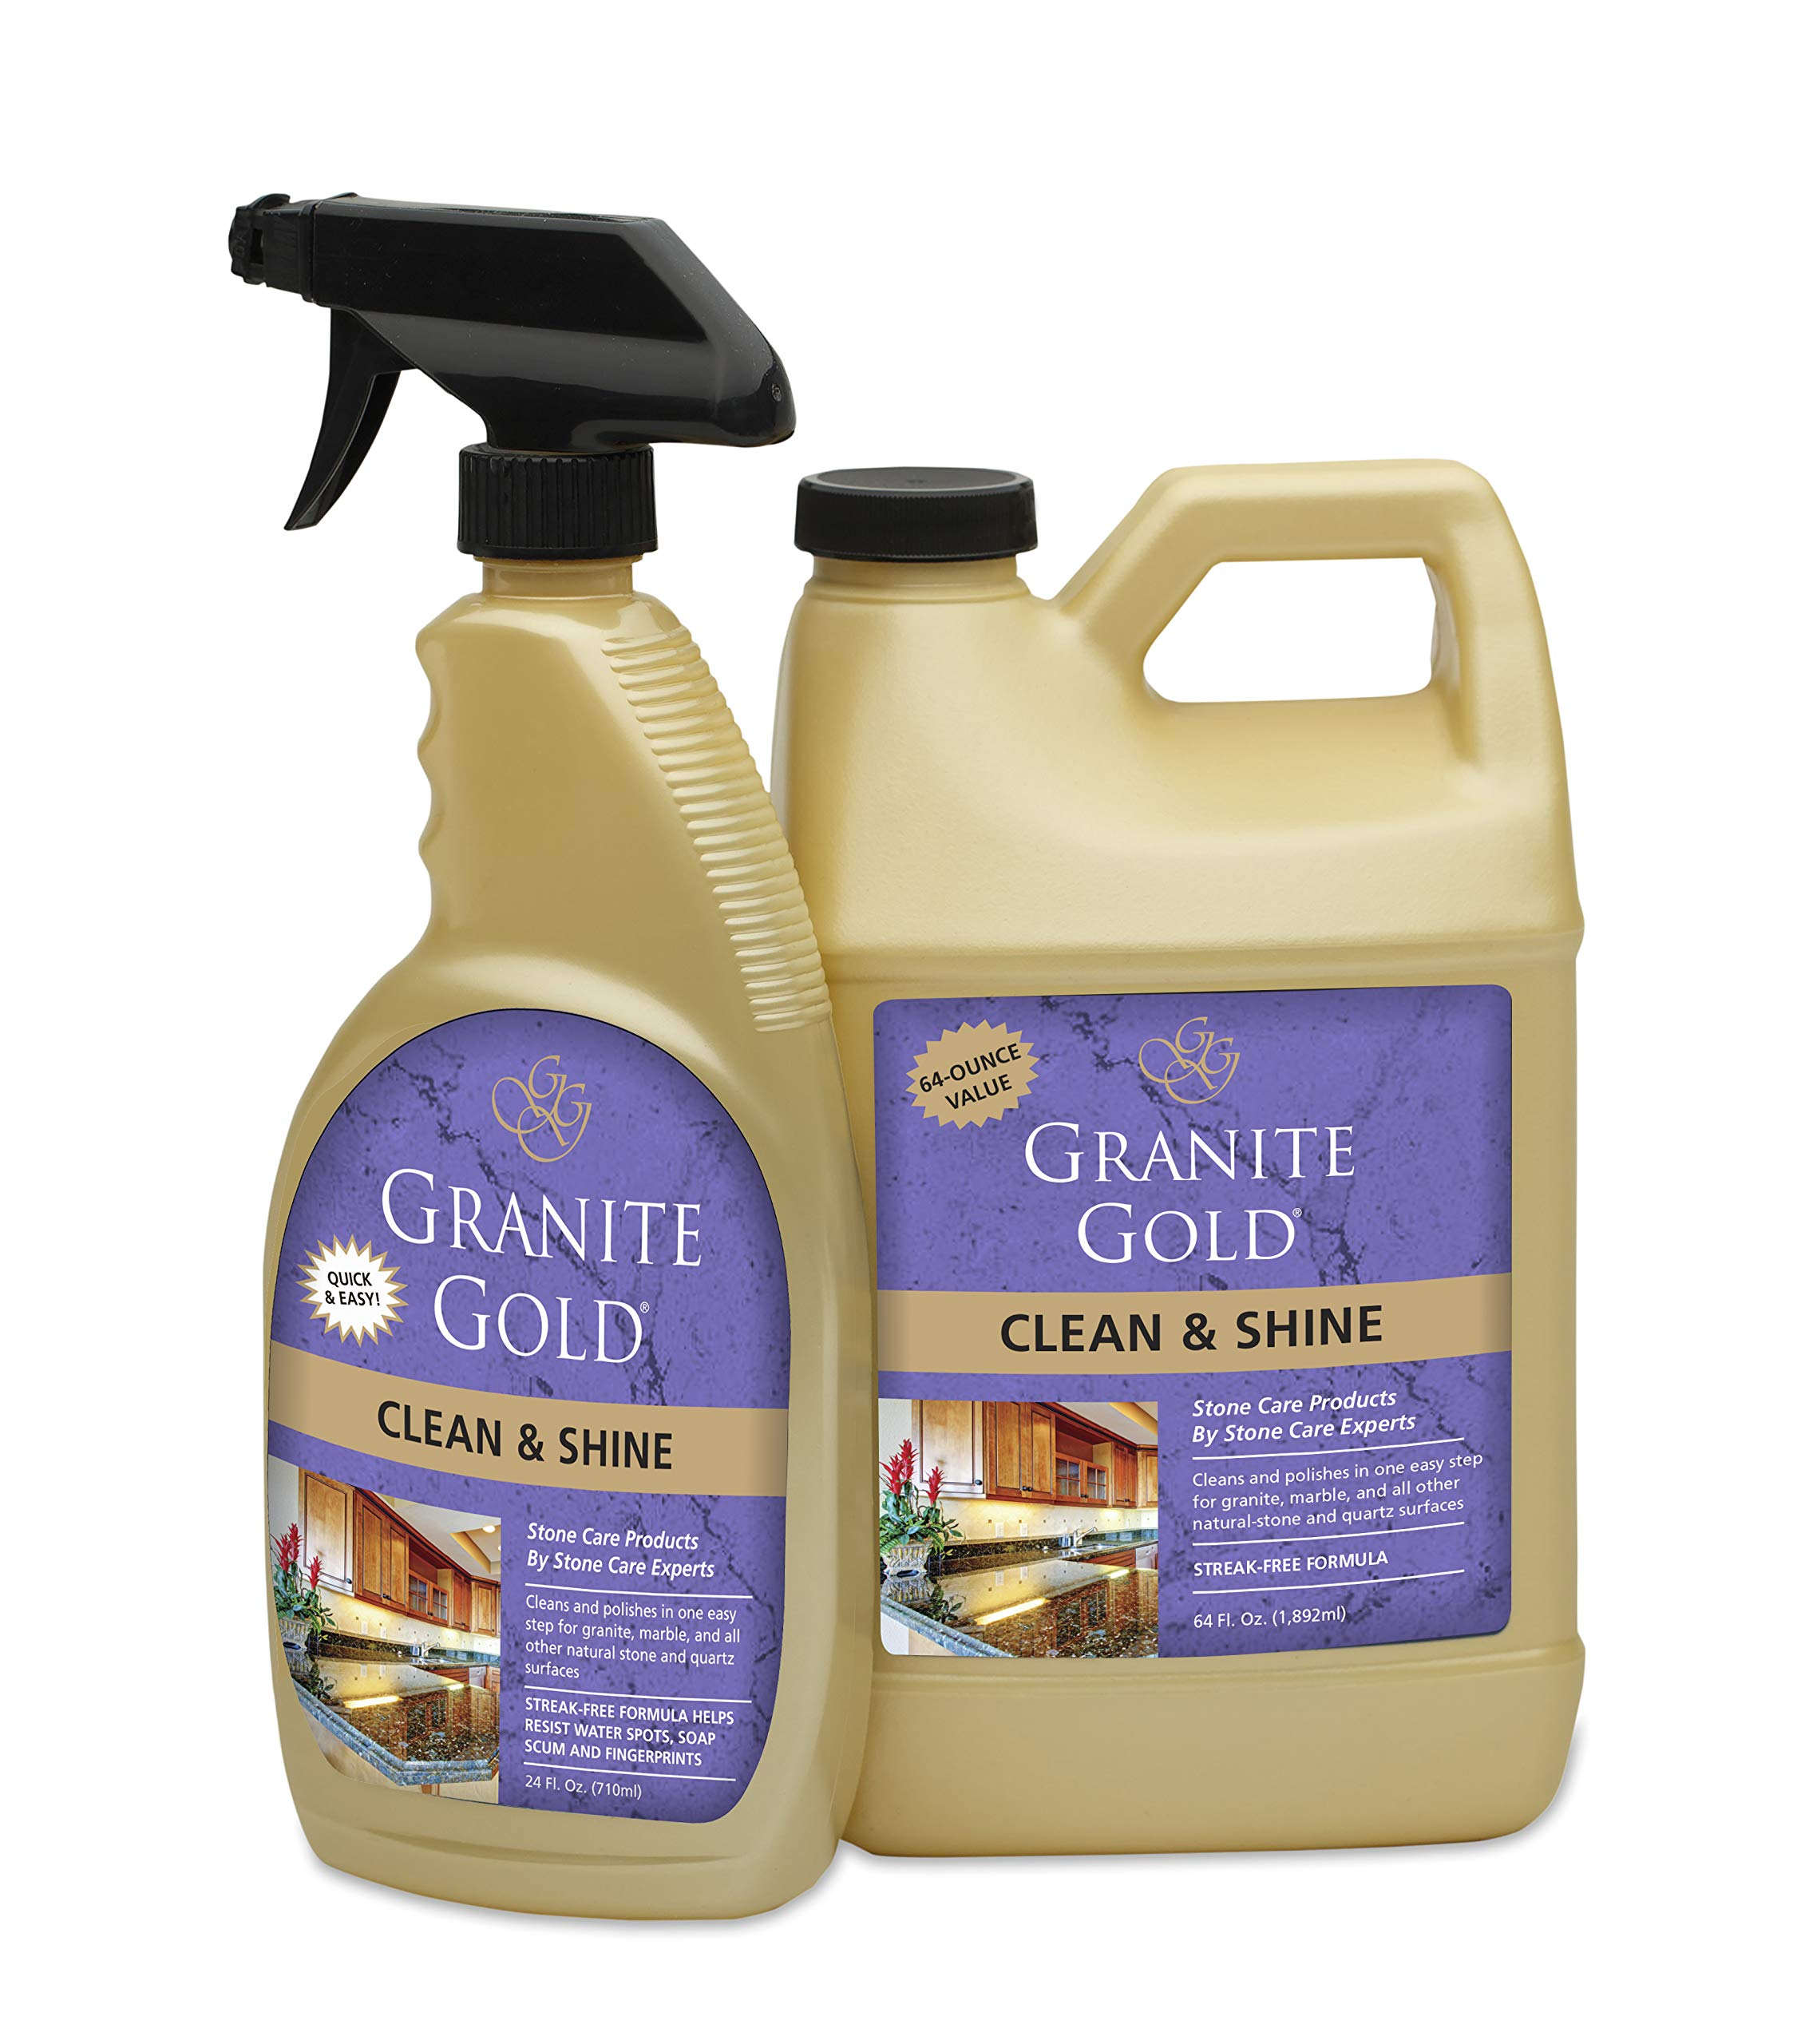 Granite Gold Clean and Shine Spray and Refill Value Pack - Polishes and Deep Cleans Natural Stone Surfaces, Made in The USA by Granite Gold (Image #1)